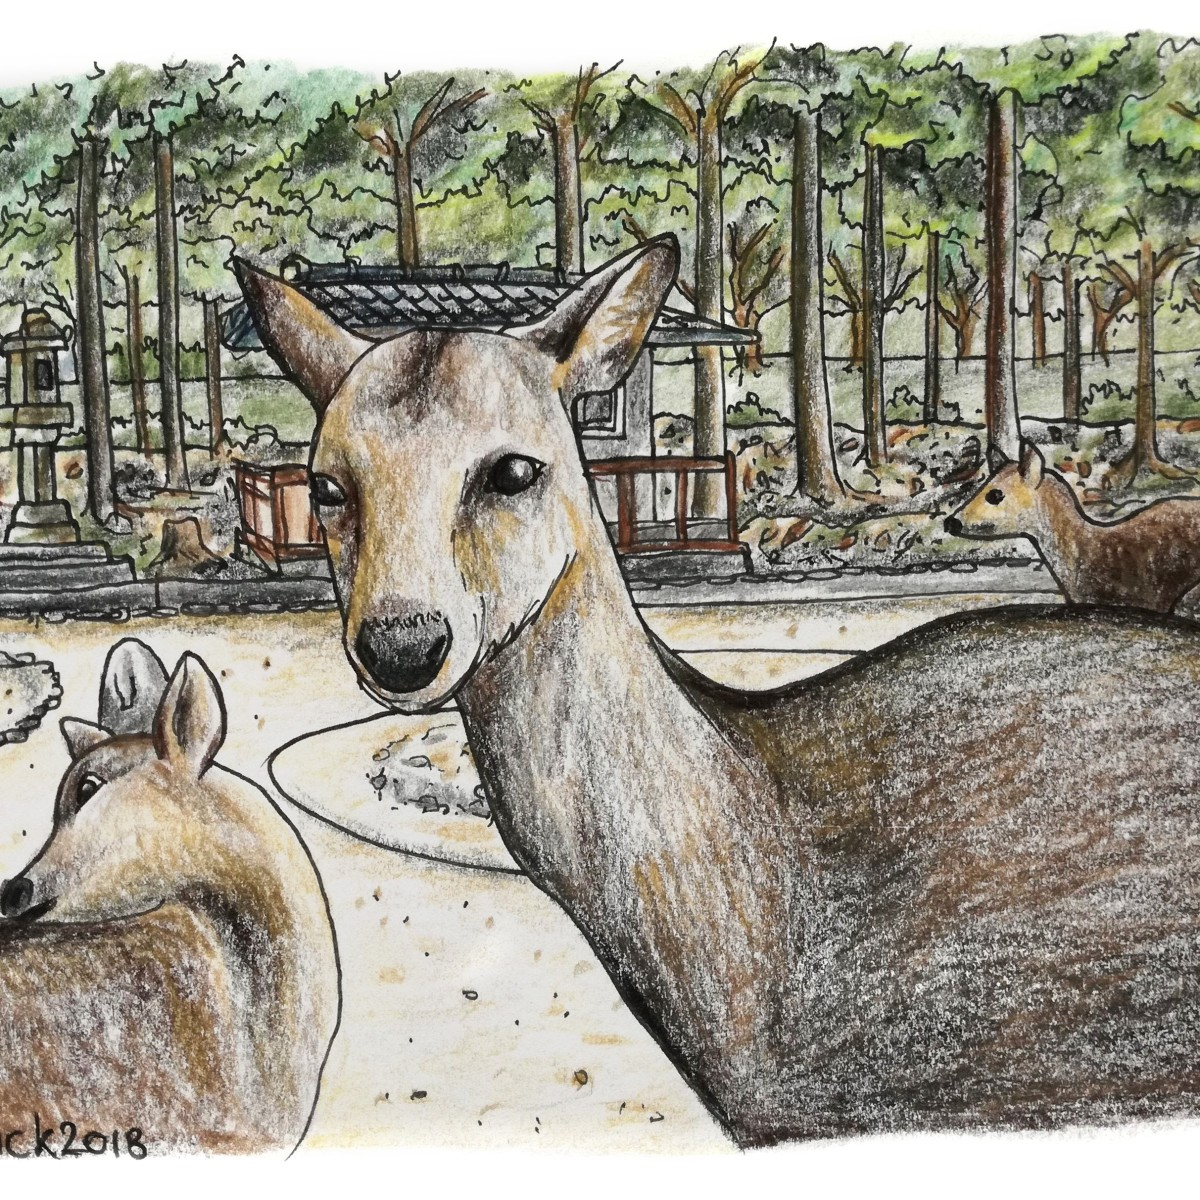 A sketch of cute deer waiting for crackers from tourist in Nara